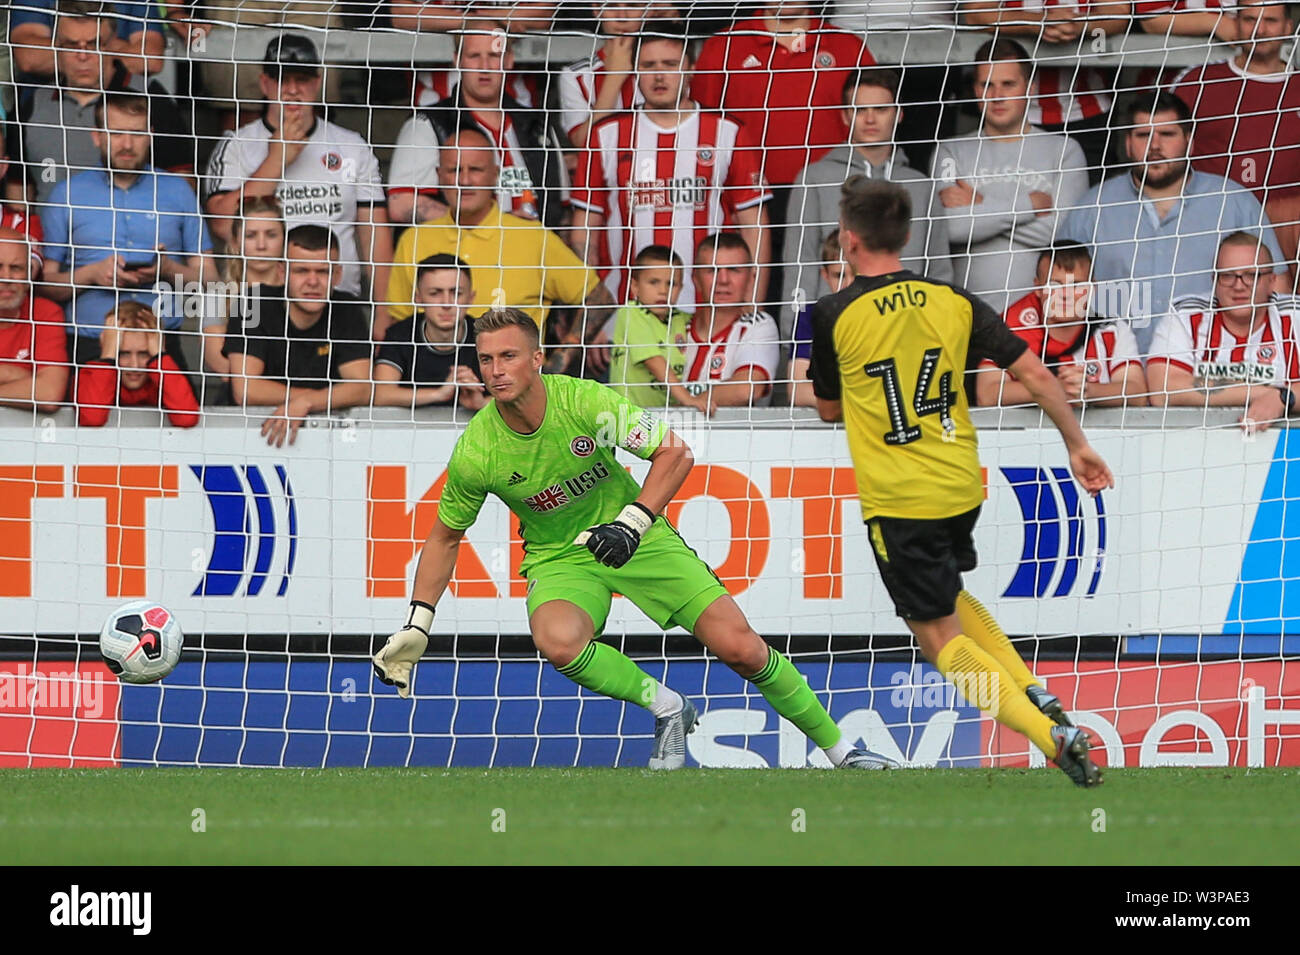 16th July 2019, Pirelli Stadium, Burton upon Trent, England; Pre-Season friendly, Burton Albion vs Sheffield United : Joe Sbarra of Burton Albion shoots and beats Goal keeper Simon Moore of Sheffield United but it goes wide  Credit: Mark Cosgrove/News Images  English Football League images are subject to DataCo Licence - Stock Image